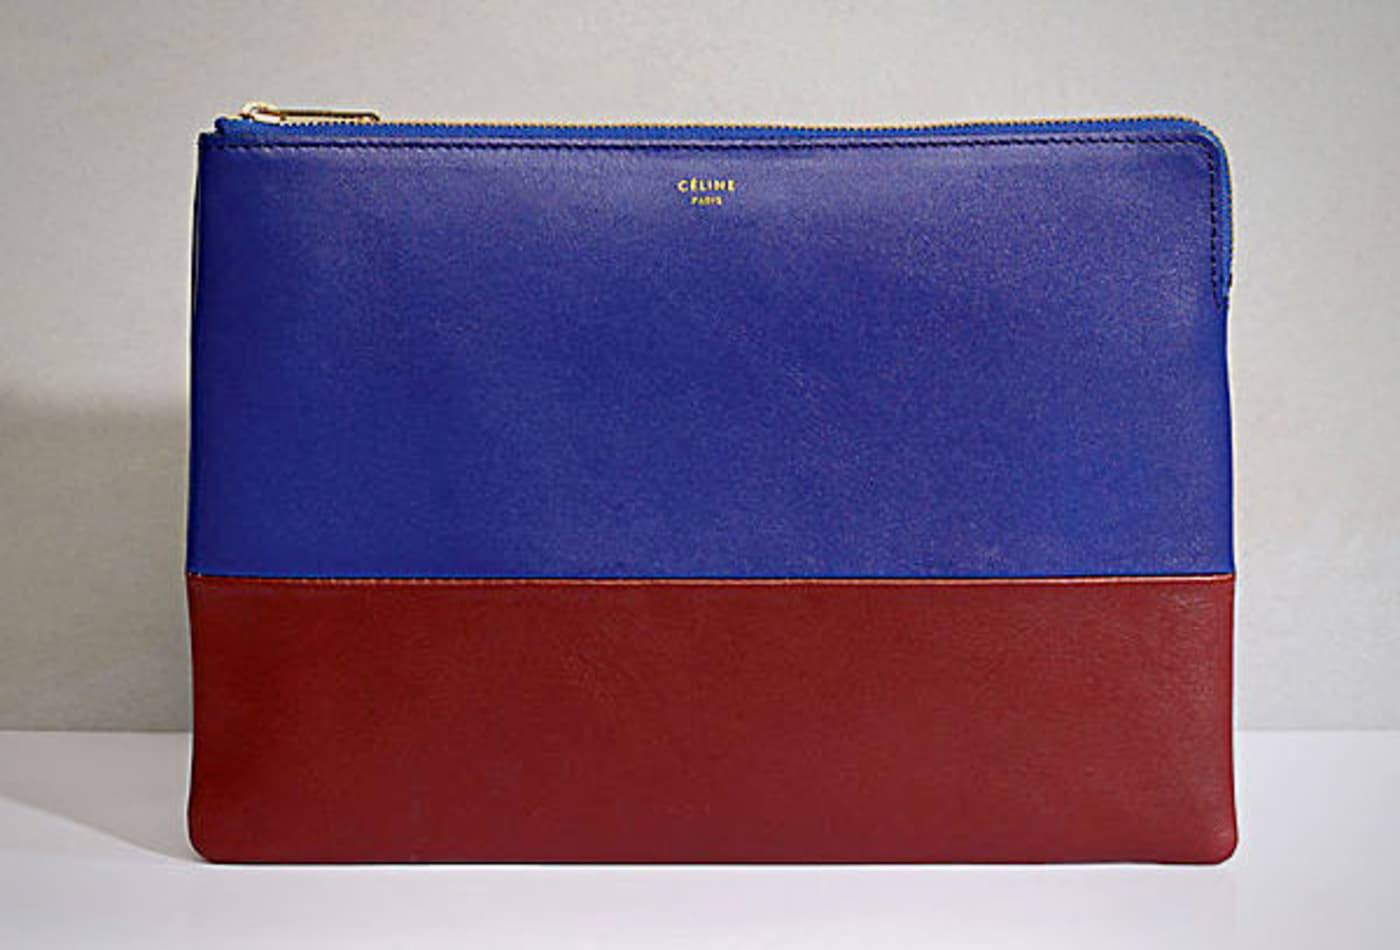 CNBC-Holiday-gifts-for-her-2011-celine.jpg